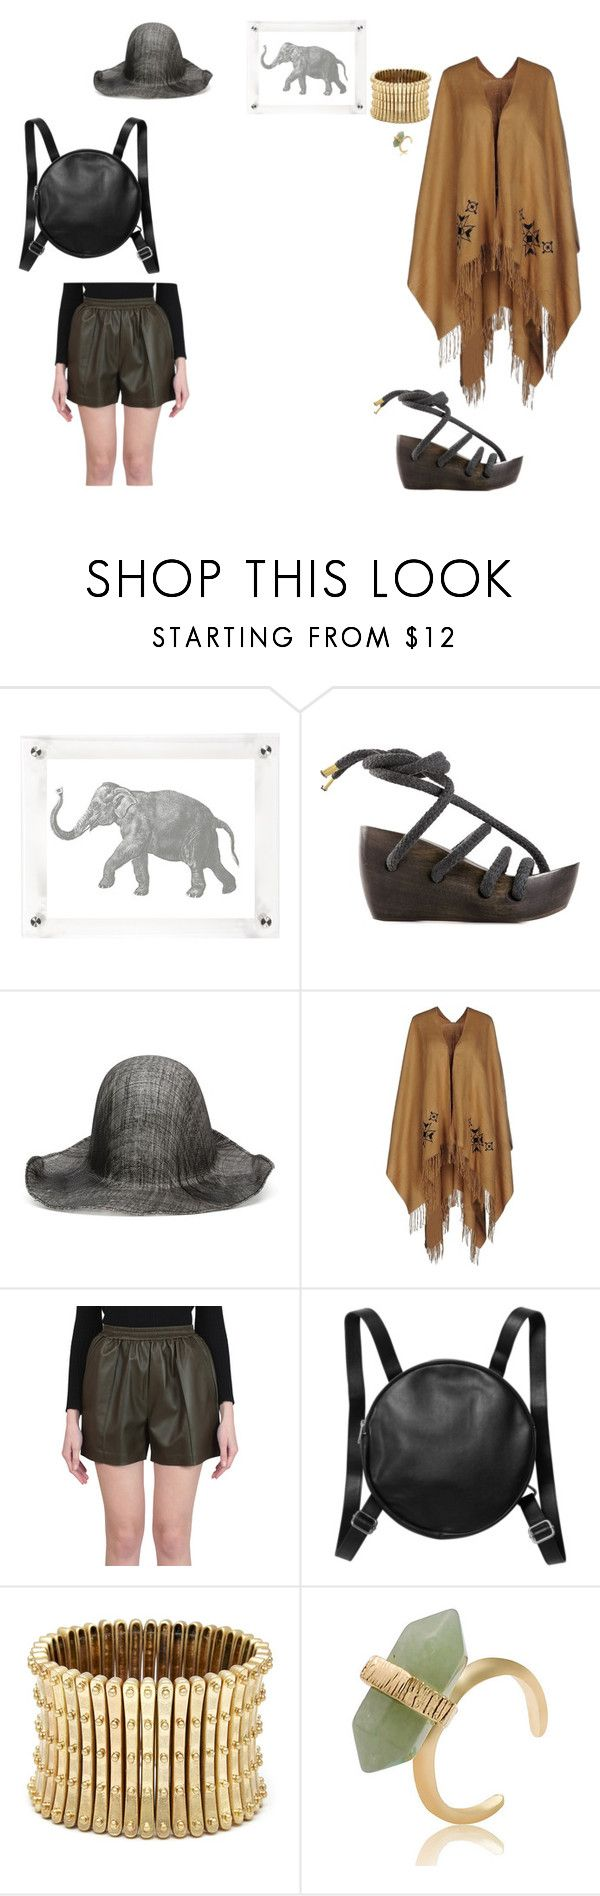 """""""1"""" by johnfontinelly on Polyvore featuring REINHARD PLANK, Givenchy, Monki, Sole Society, women's clothing, women, female, woman, misses and juniors"""